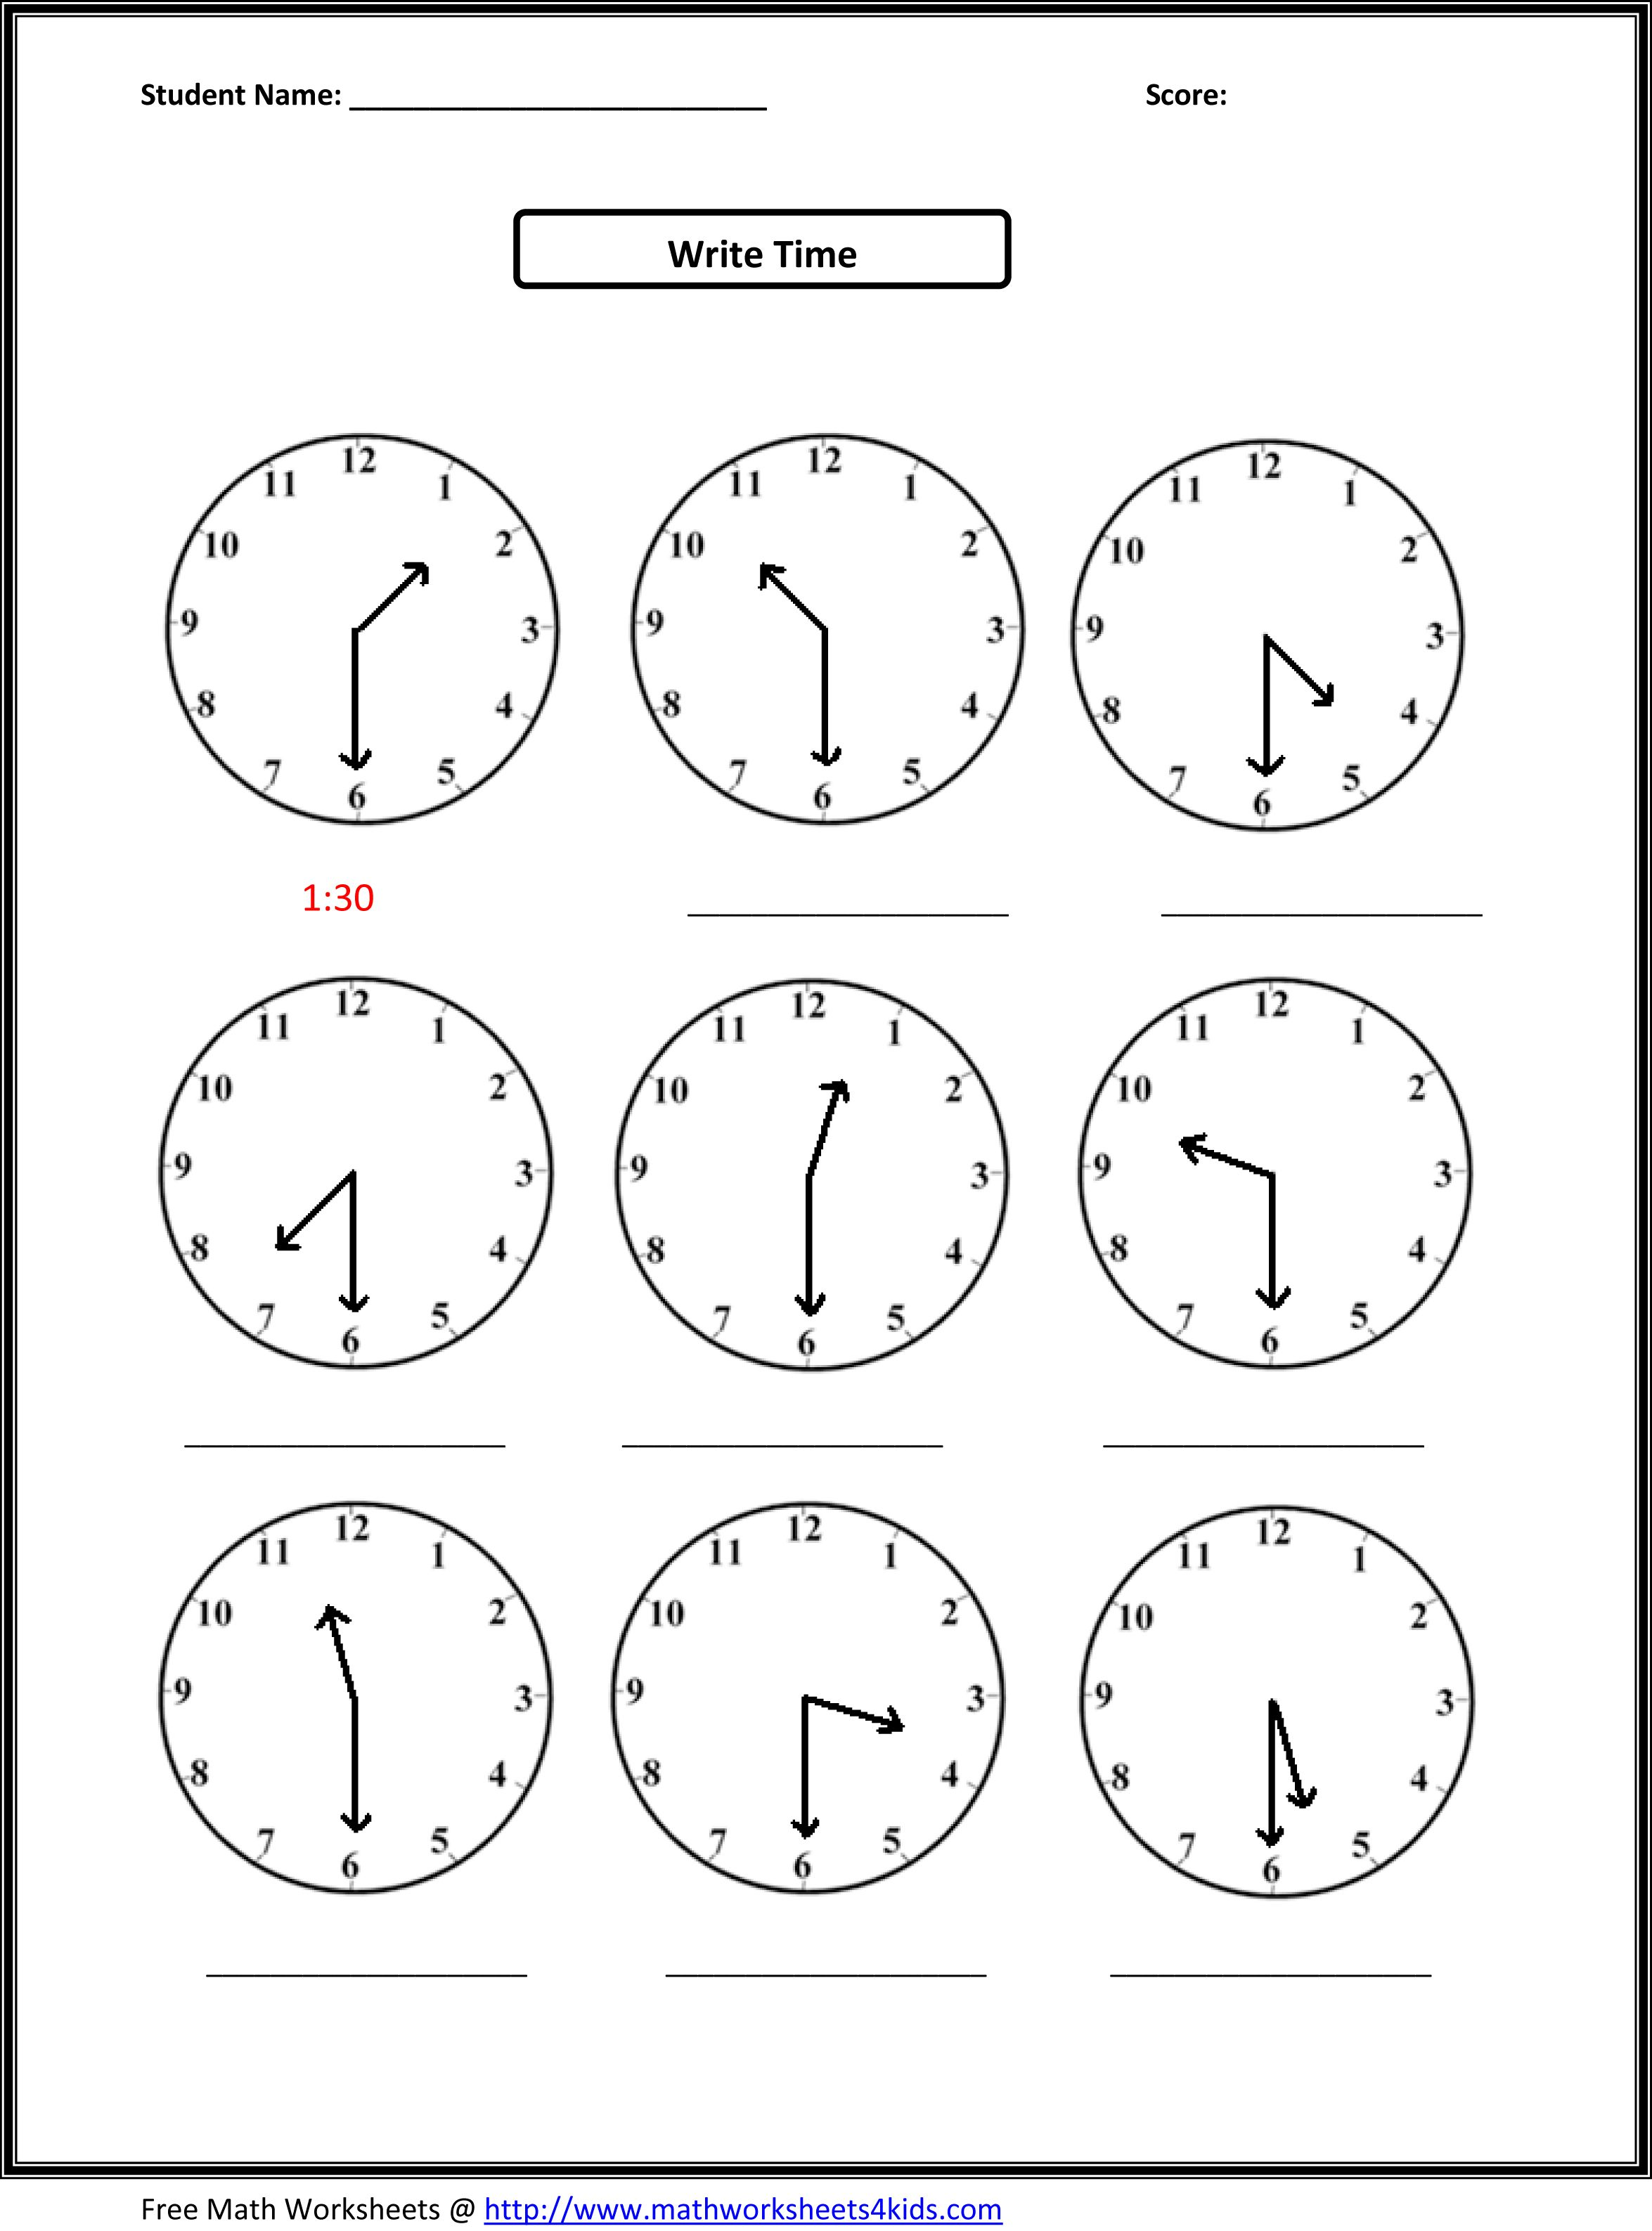 Proatmealus  Gorgeous Worksheet On Time For Grade   Reocurent With Likable Free Printable Telling Time Worksheets Nd Grade  Reocurent With Adorable Grid Drawing Worksheets Also Worksheet Writing Binary Formulas In Addition Think Pair Share Worksheet And Sentence Completion Worksheets As Well As Worksheet Conservation Of Momentum Additionally Th Grade Fractions Worksheets From Reocurentcom With Proatmealus  Likable Worksheet On Time For Grade   Reocurent With Adorable Free Printable Telling Time Worksheets Nd Grade  Reocurent And Gorgeous Grid Drawing Worksheets Also Worksheet Writing Binary Formulas In Addition Think Pair Share Worksheet From Reocurentcom